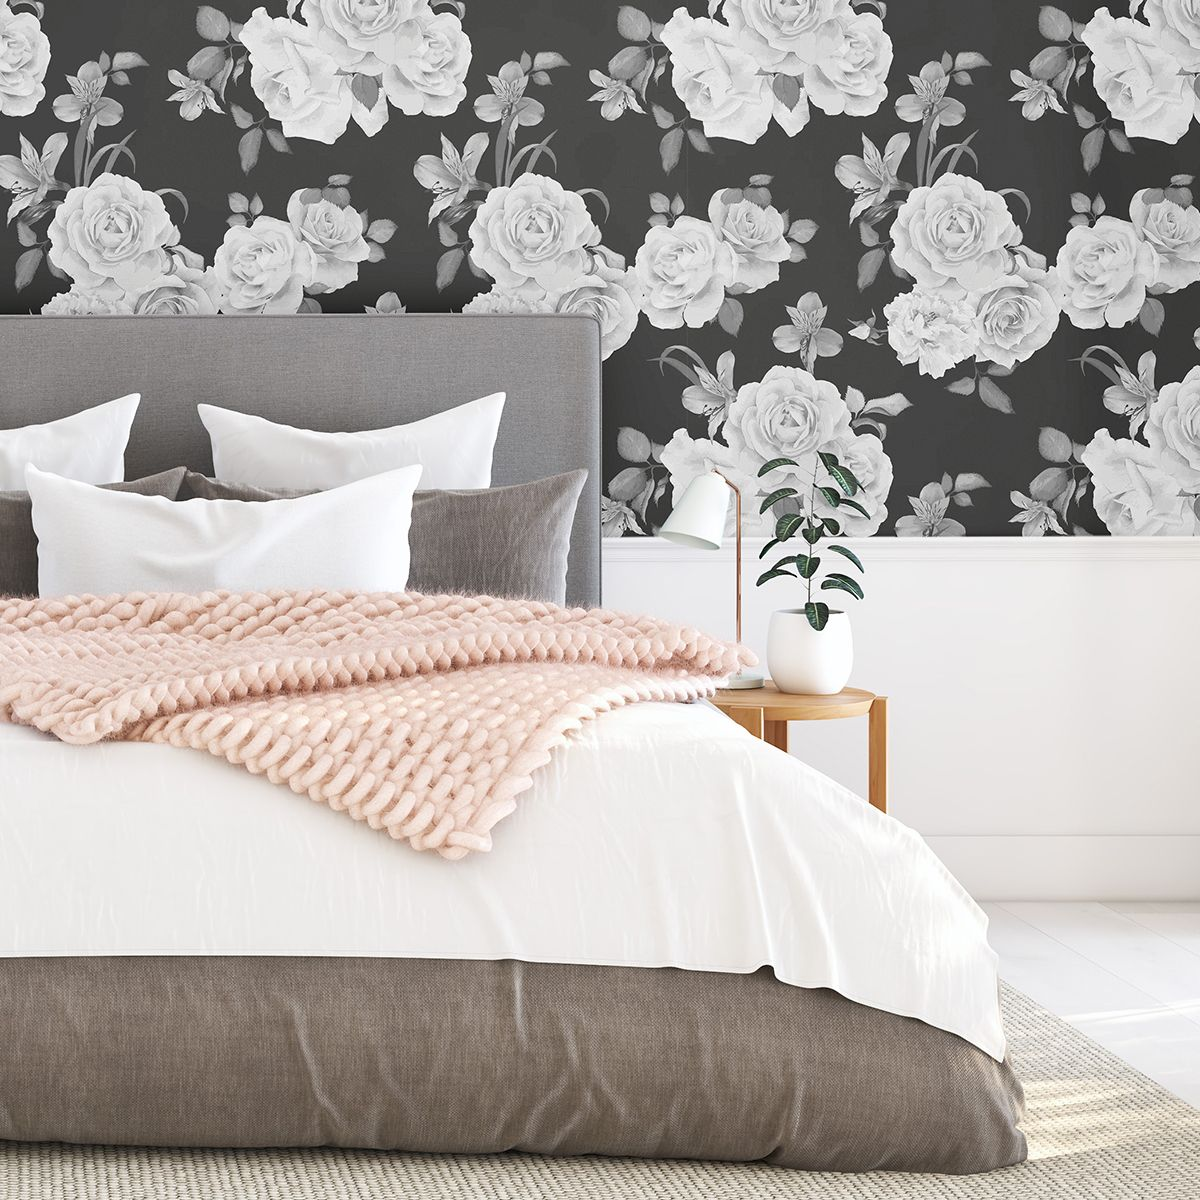 Black and White Floral Fabric Removable Wallpaper 9335 in